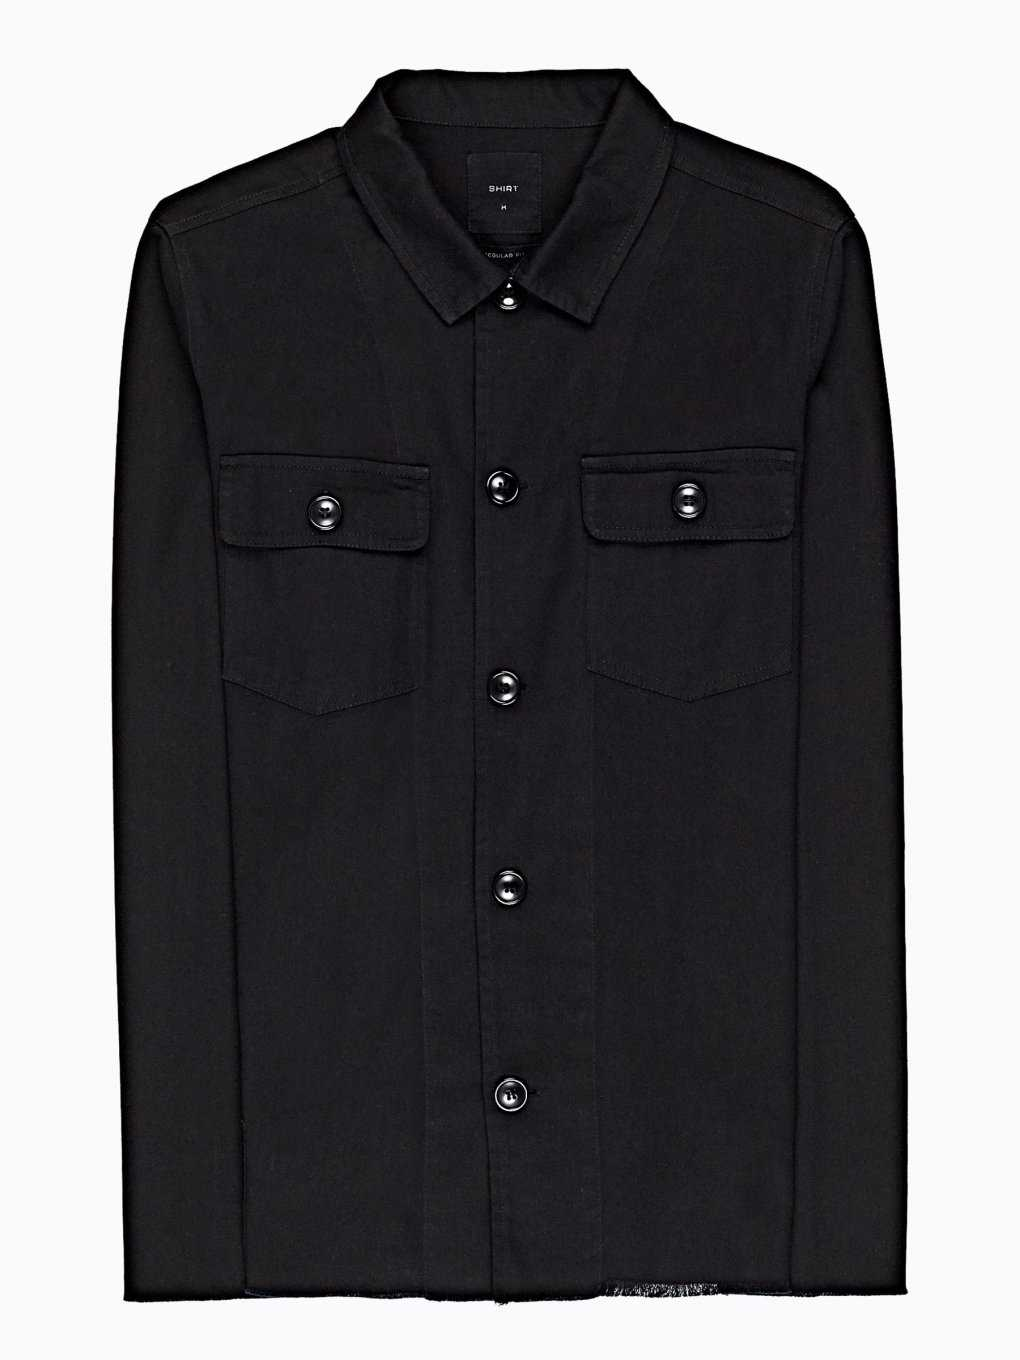 Regular fit shirt with raw hem